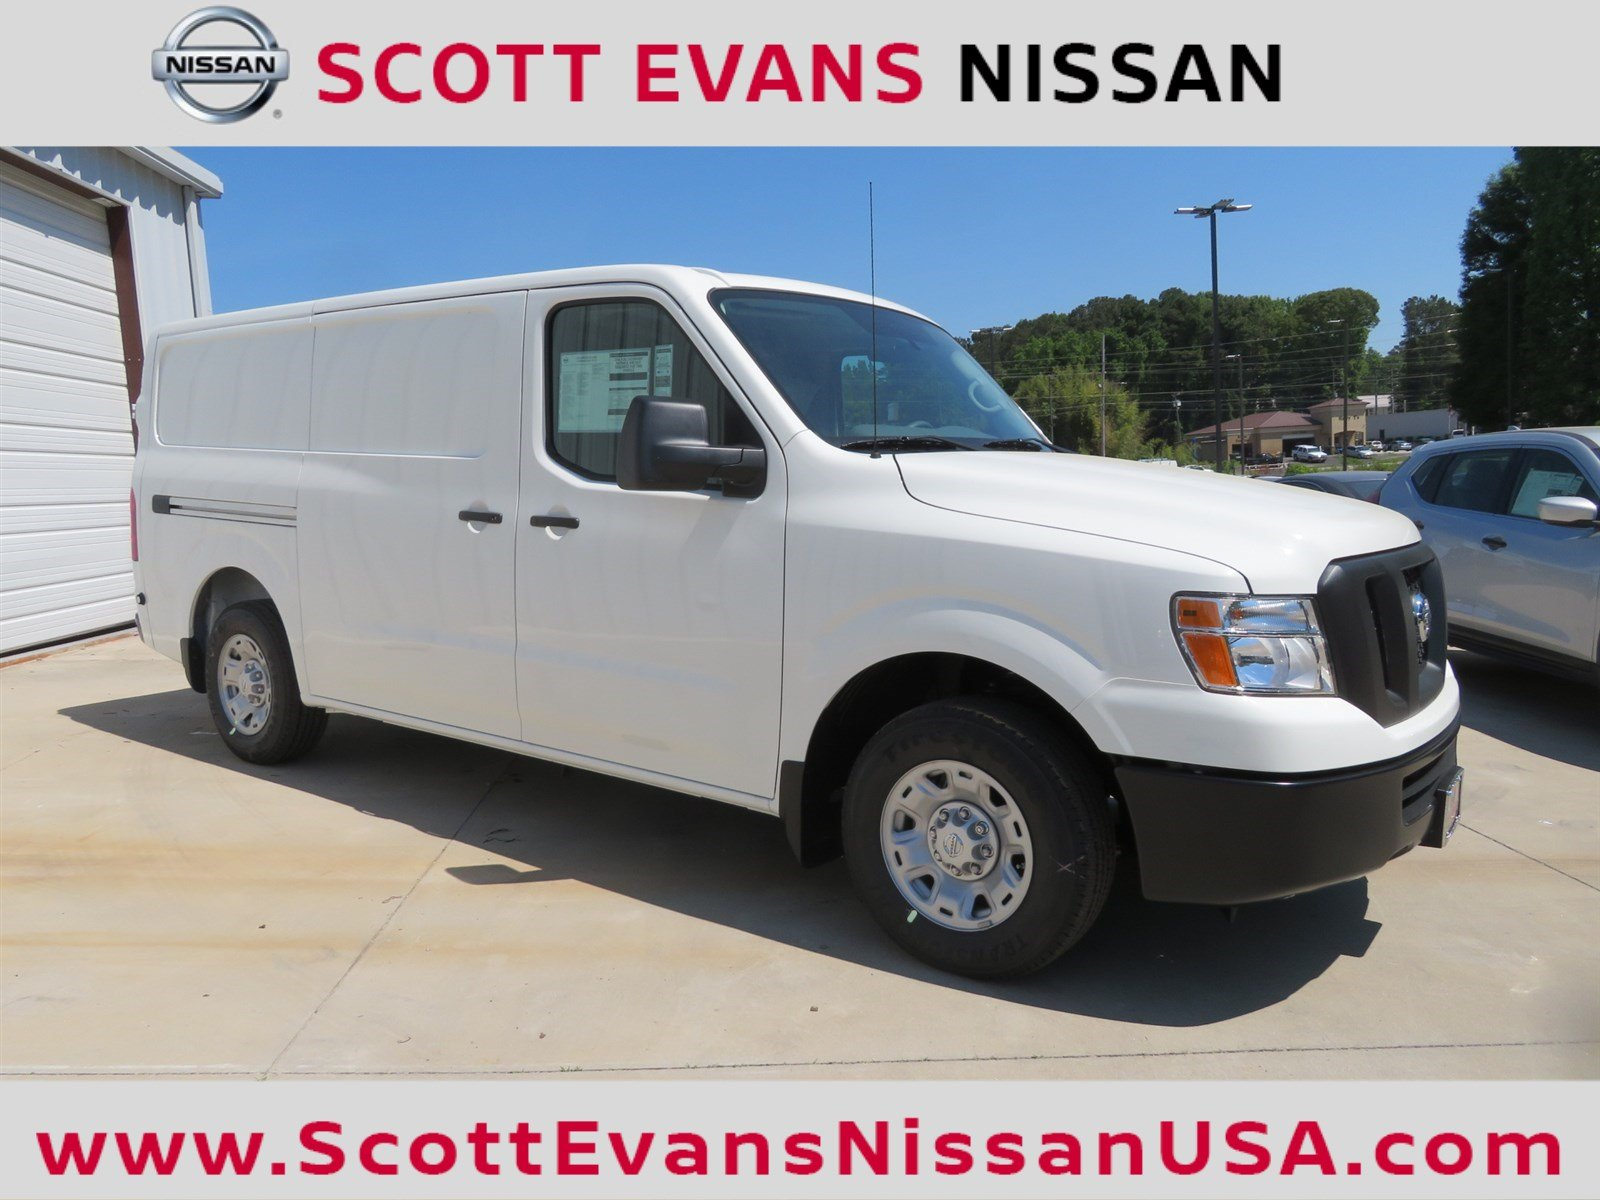 New 2018 Nissan NV2500 SV Full size Cargo Van in Carrollton